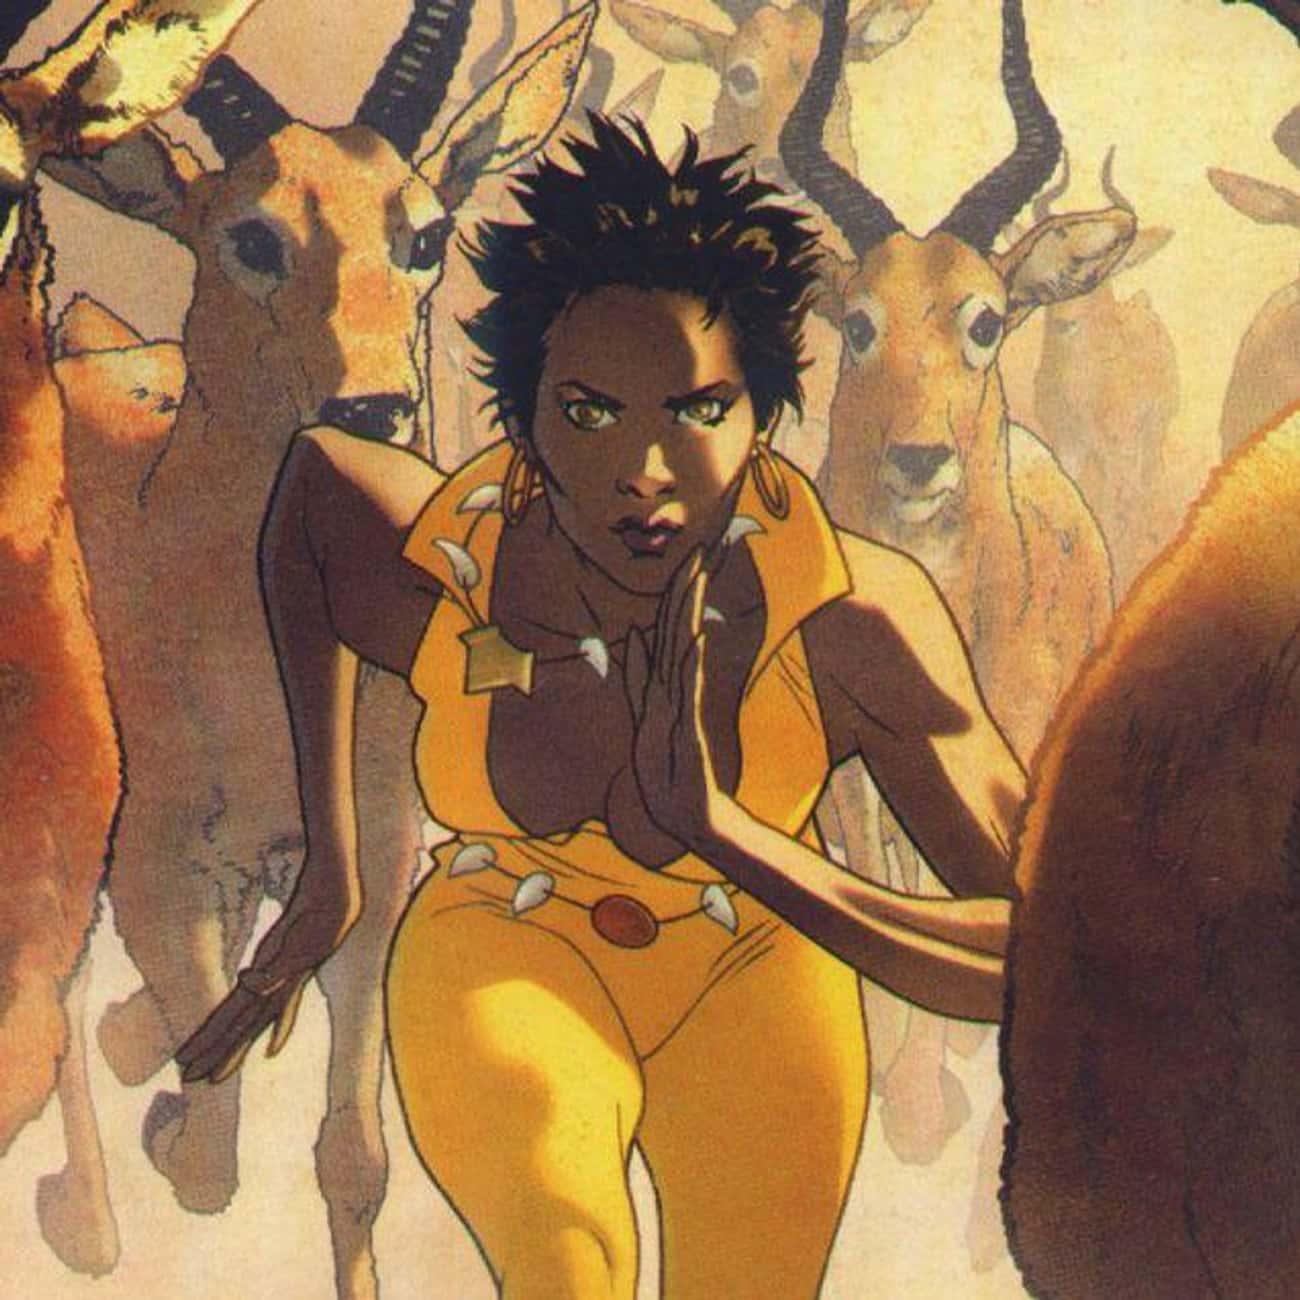 Vixen is listed (or ranked) 2 on the list Greatest Black Female Superheroes